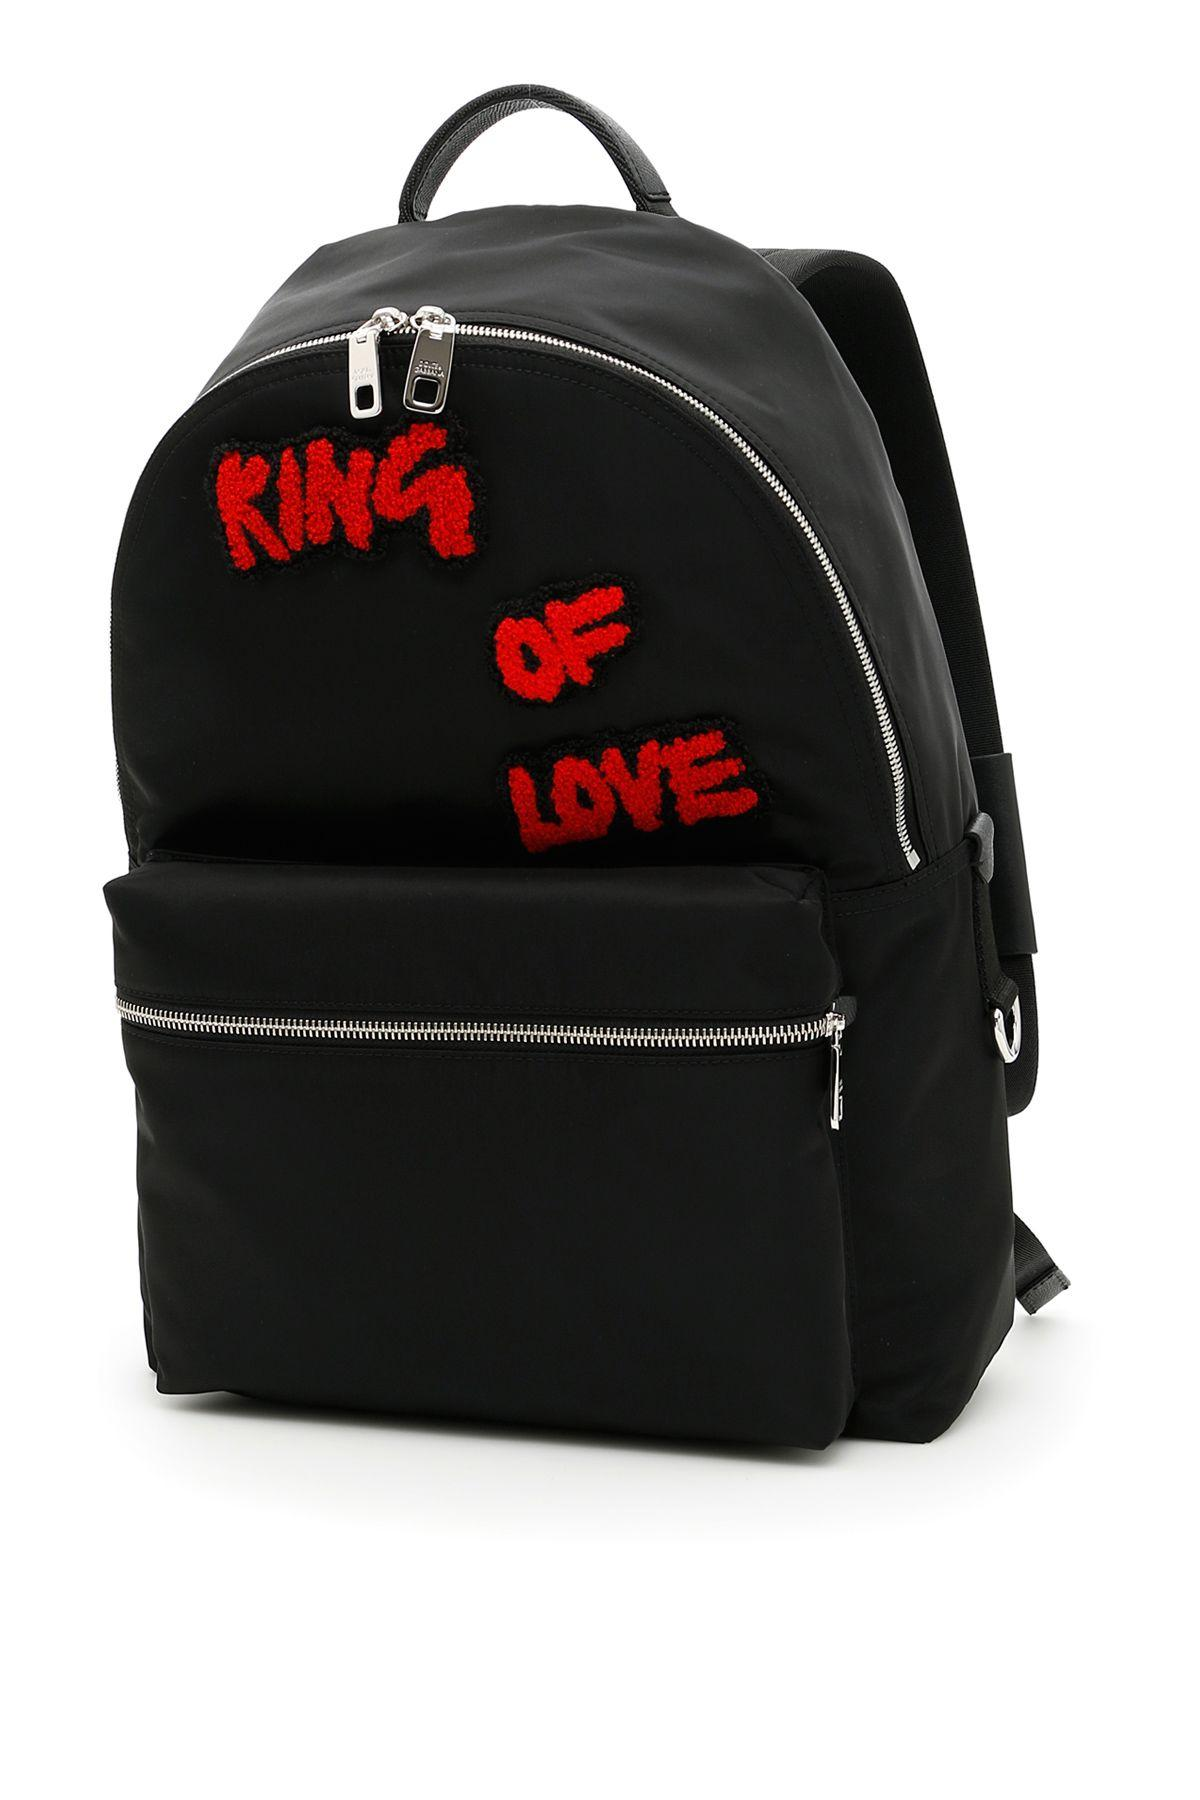 Dolce & Gabbana Nylon Vulcano Backpack With Patches In Black